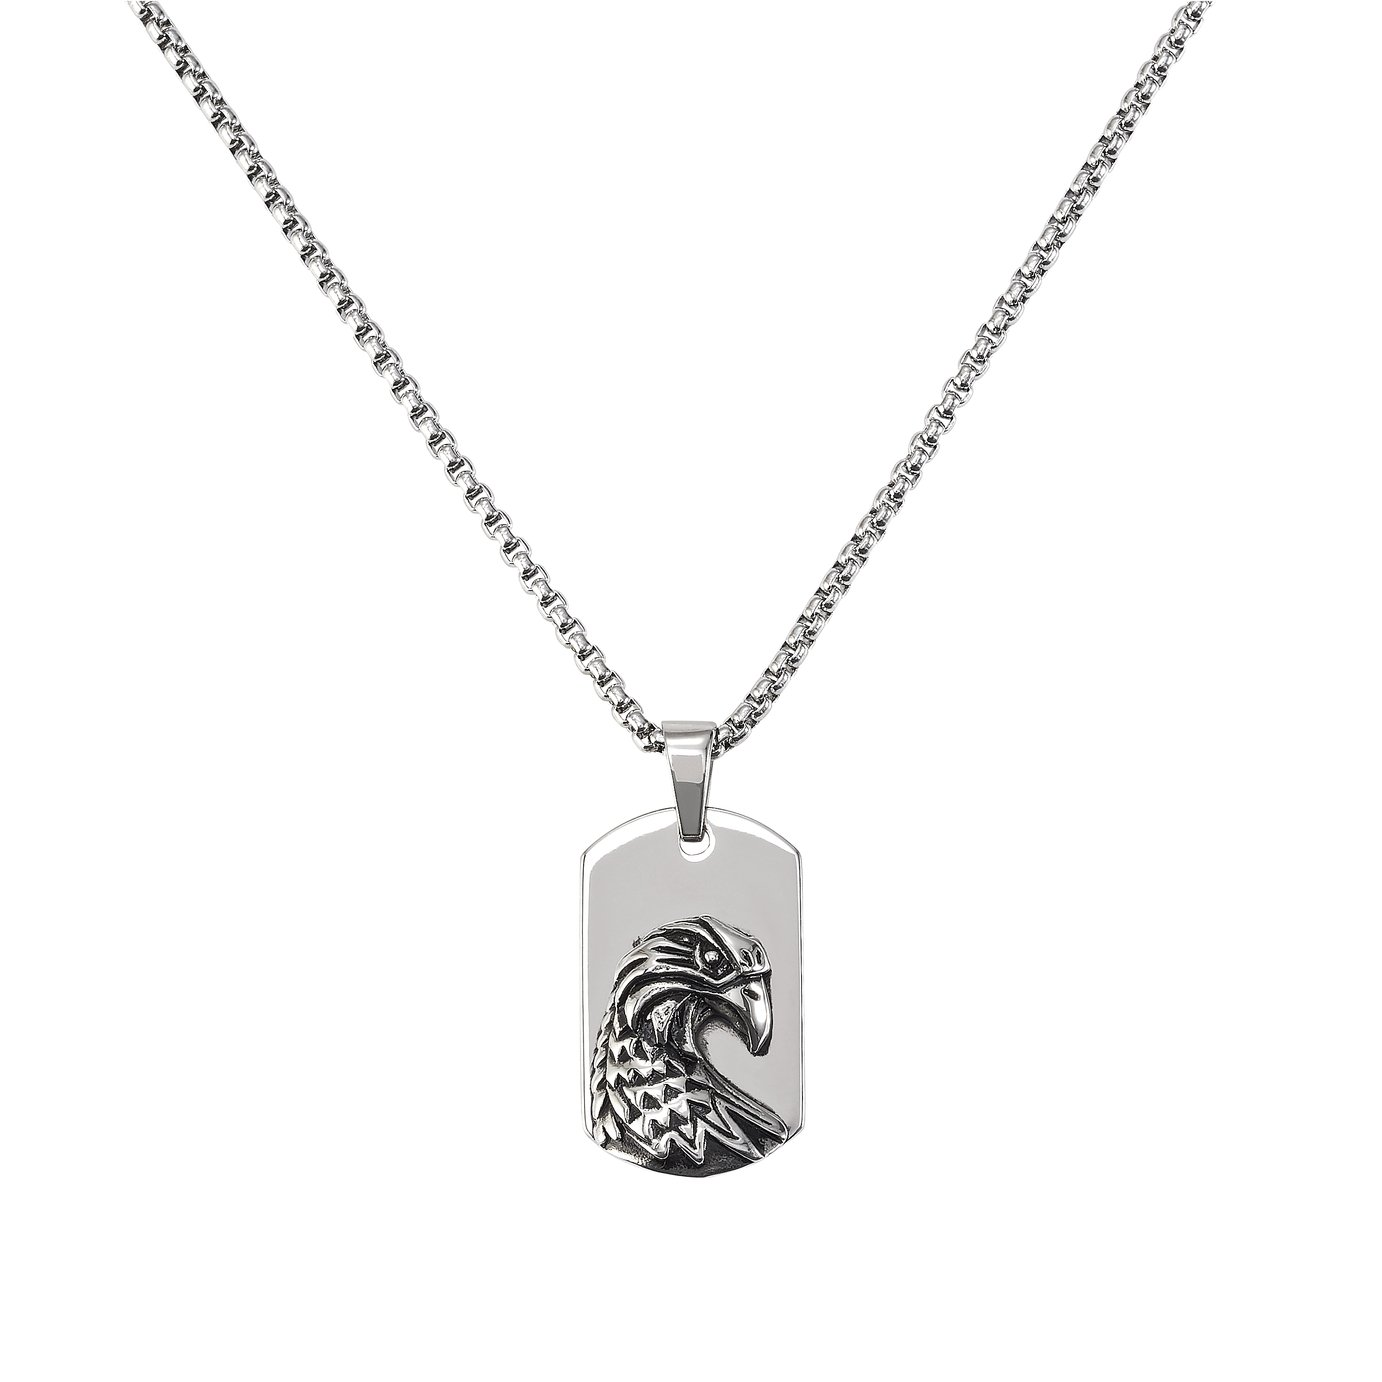 Revere Stainless Steel with Eagle Dog Tag Necklace